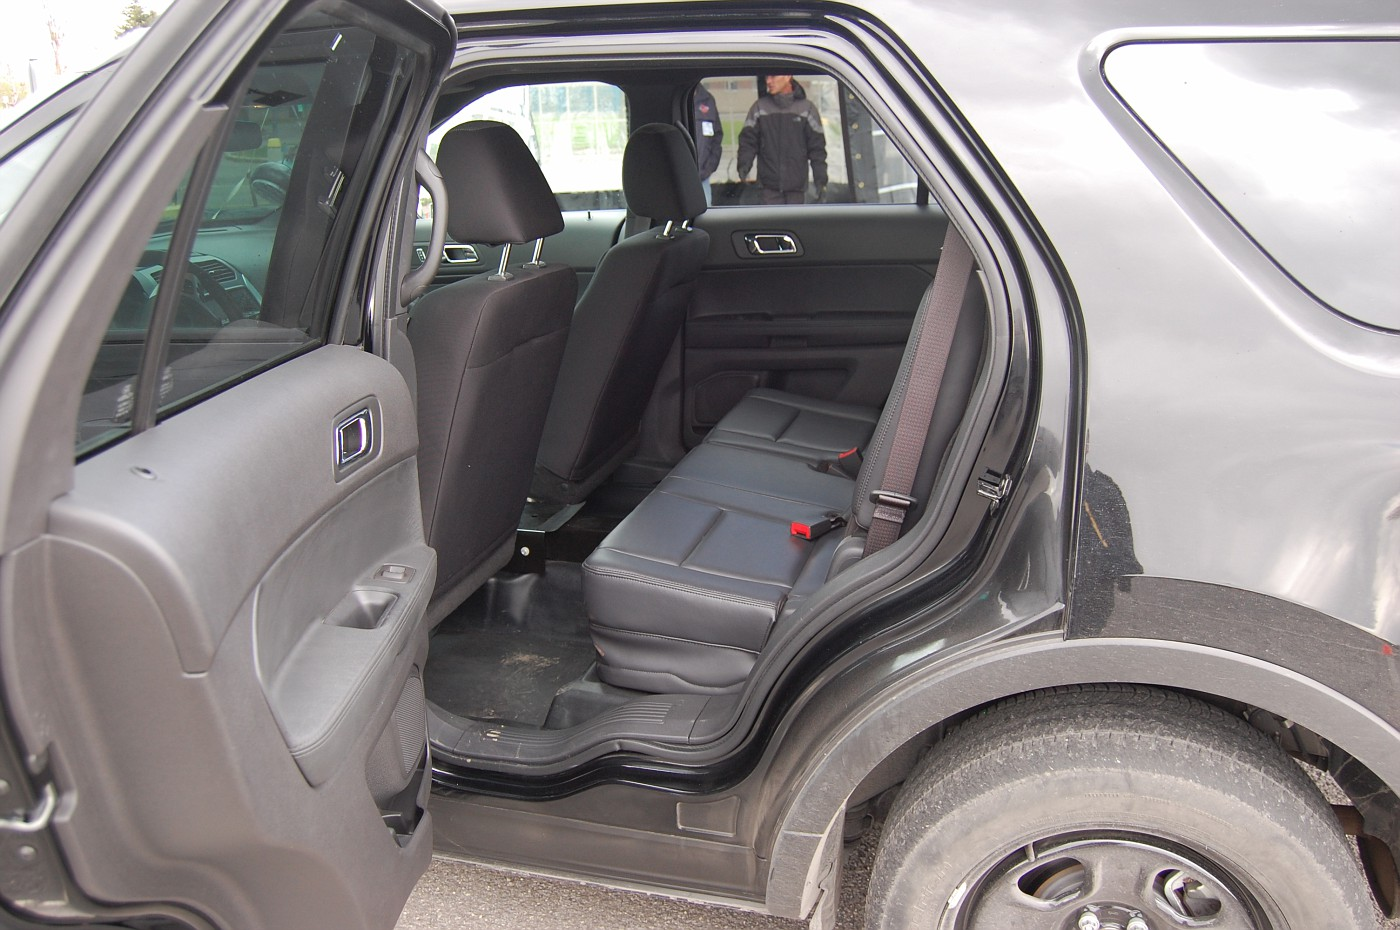 SUV rear door open and interior